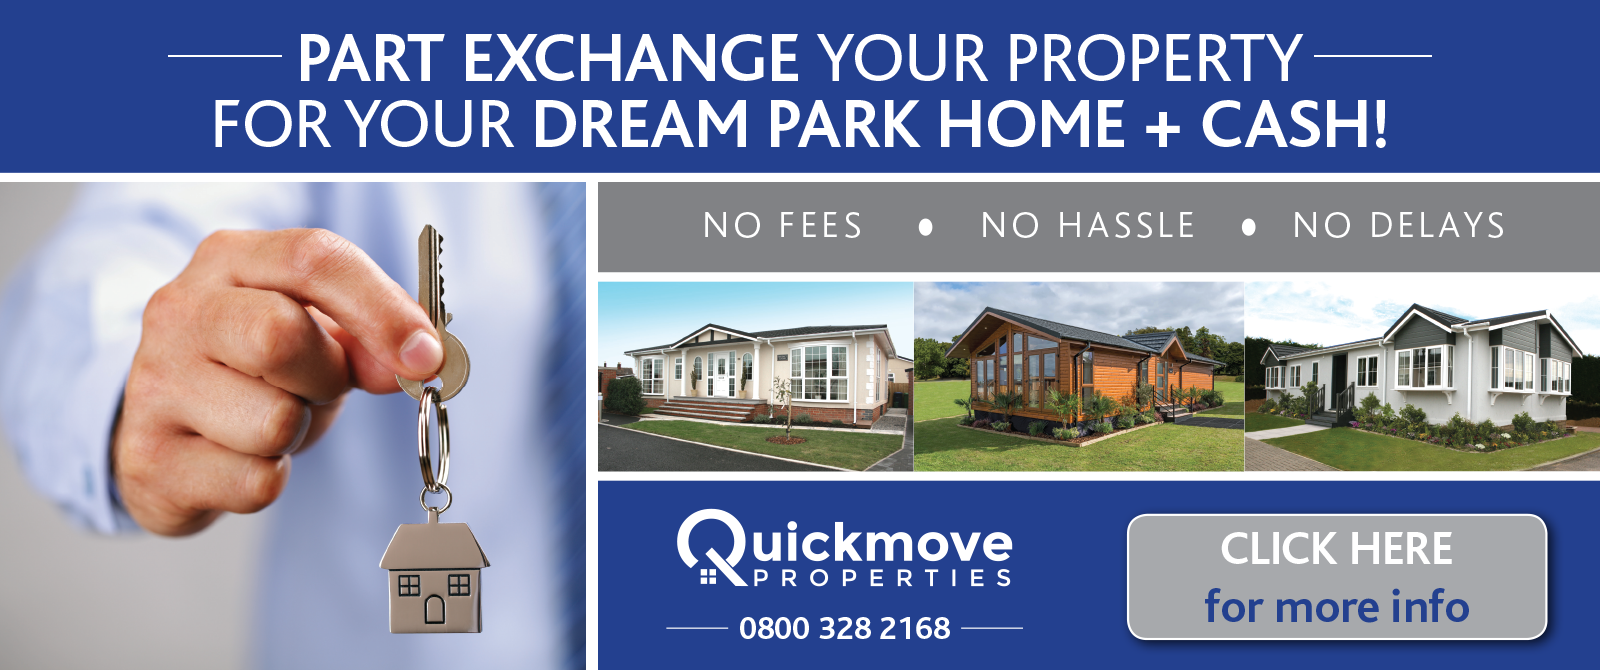 Quickmove Properties